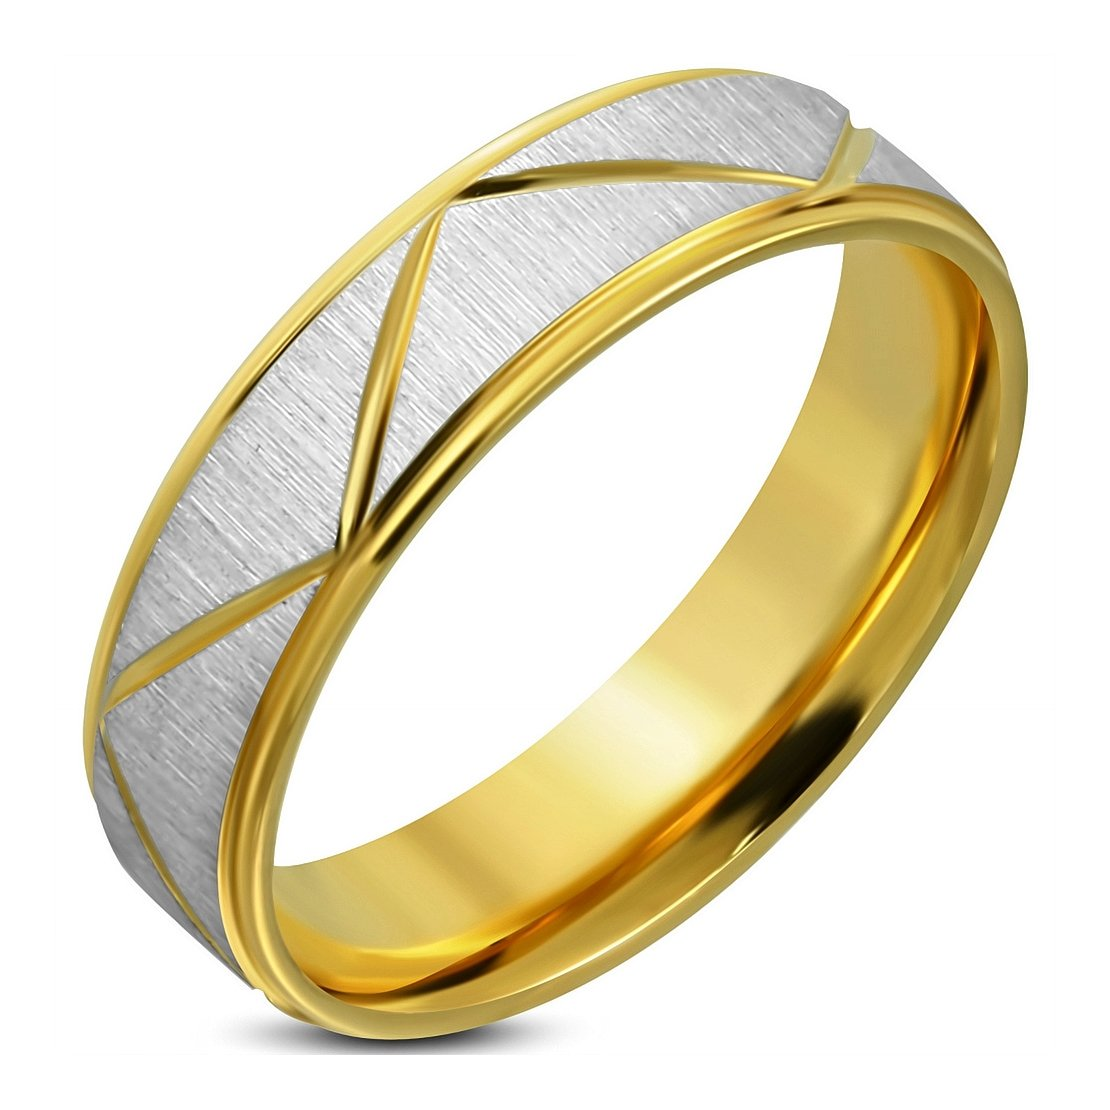 Stainless Steel Satin Finished 2 Color Lighting Bolt Step-Edge Comfort Fit Wedding Flat Band Ring